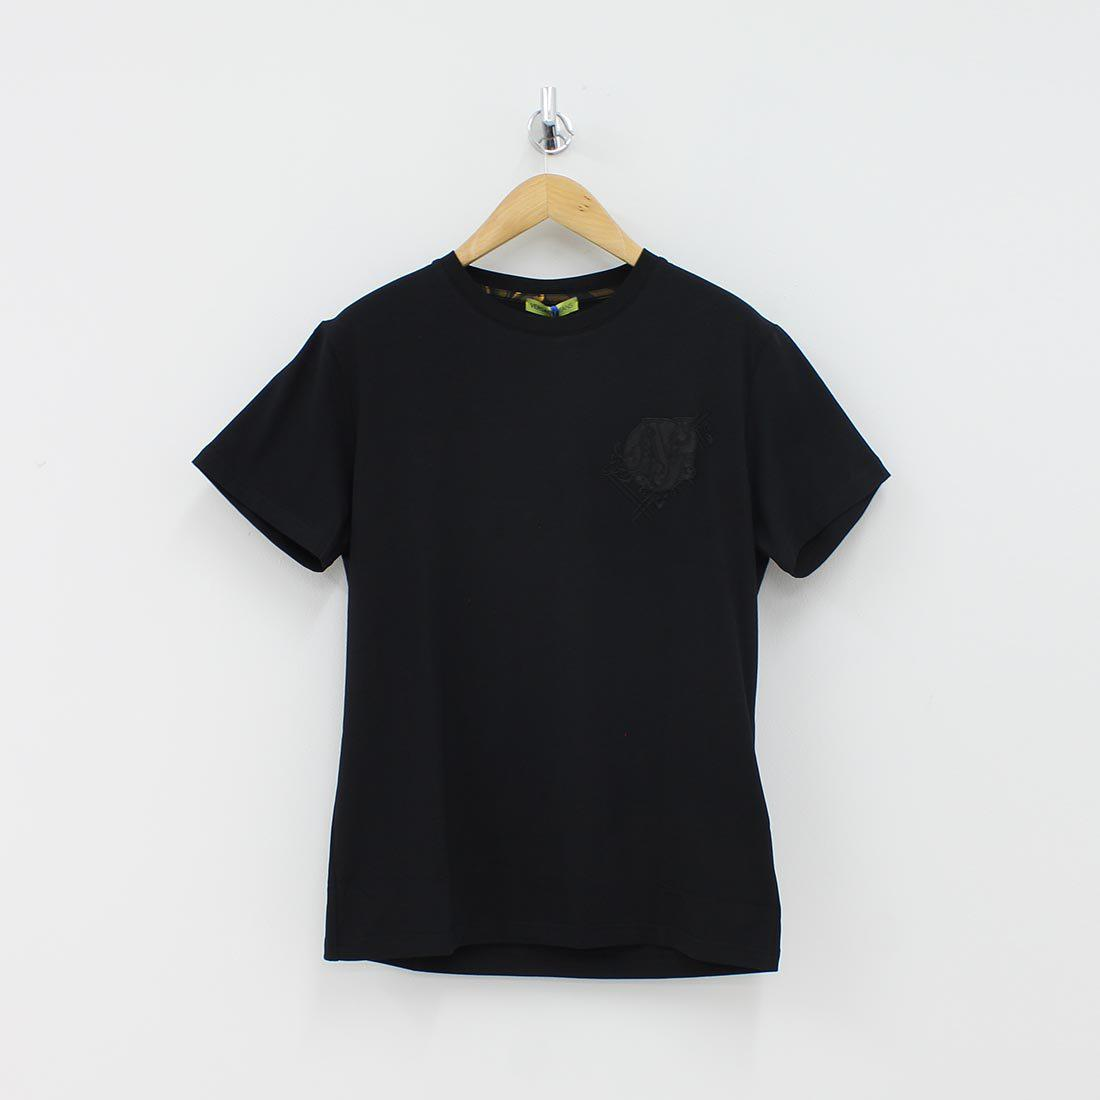 54da351a Versace Jeans Embroidered Patch T-shirt Black in Black for Men - Lyst